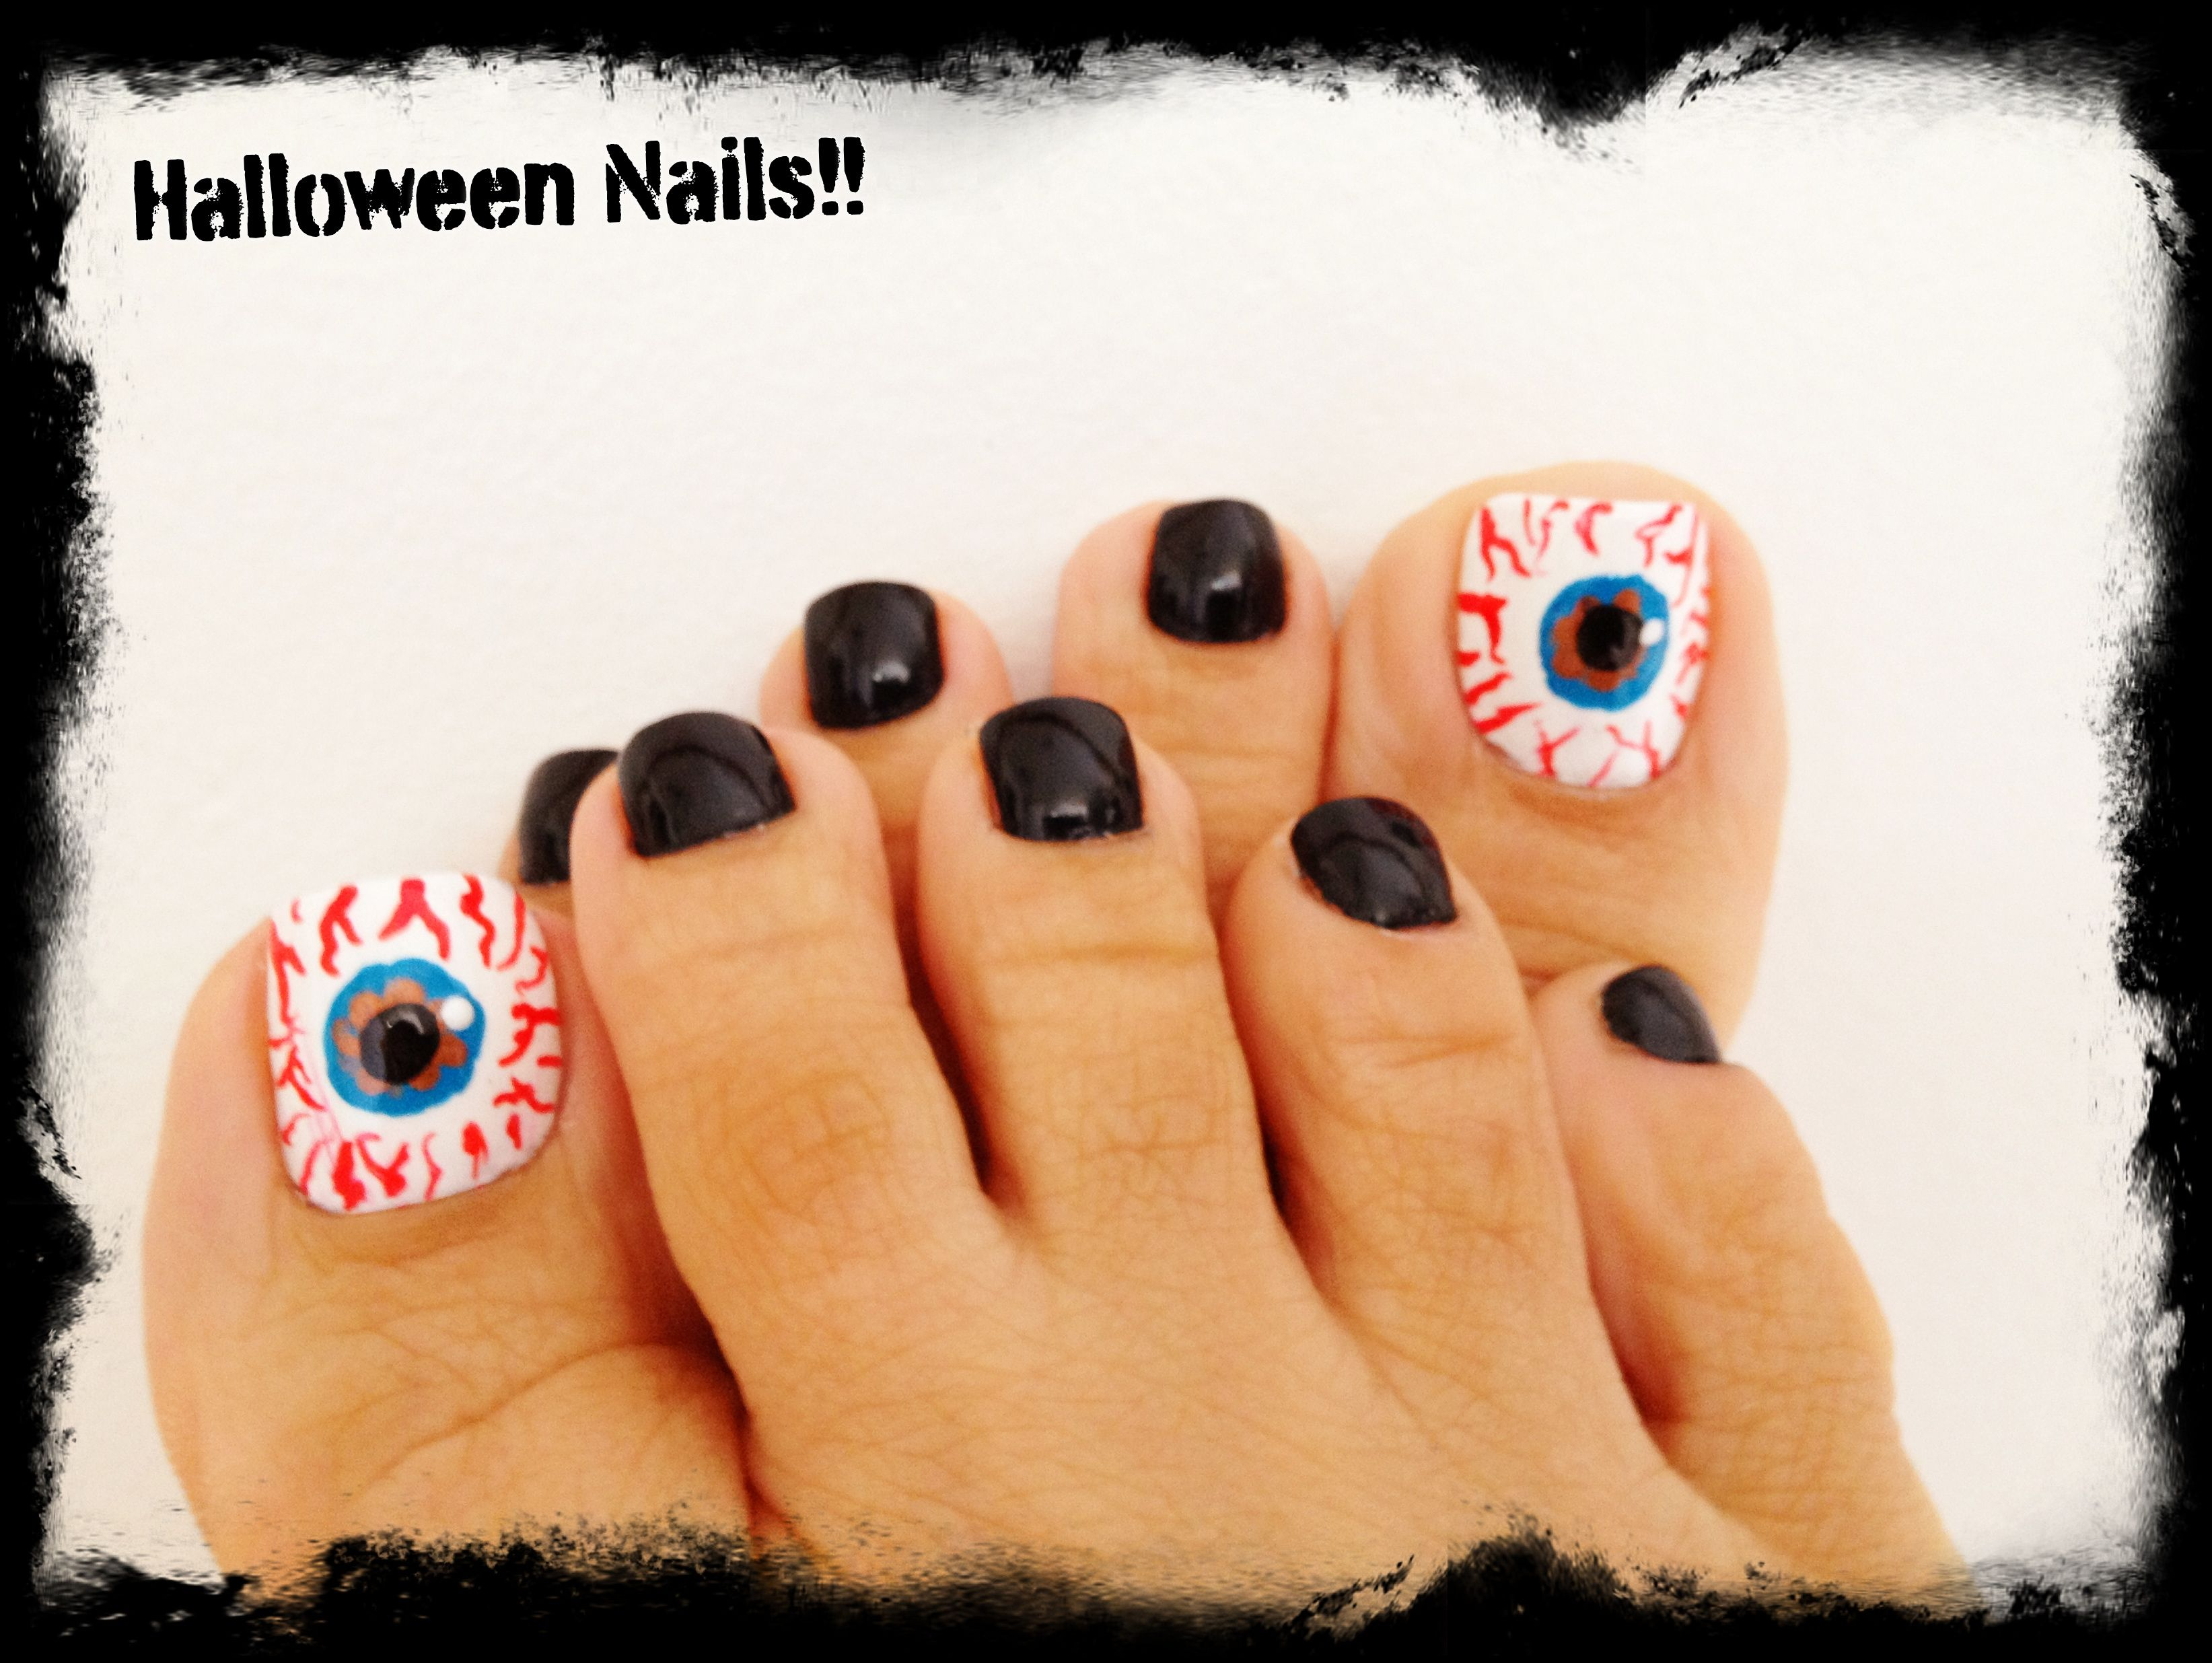 Halloween Nails.....WOW, how 'bout that eye on your big ...